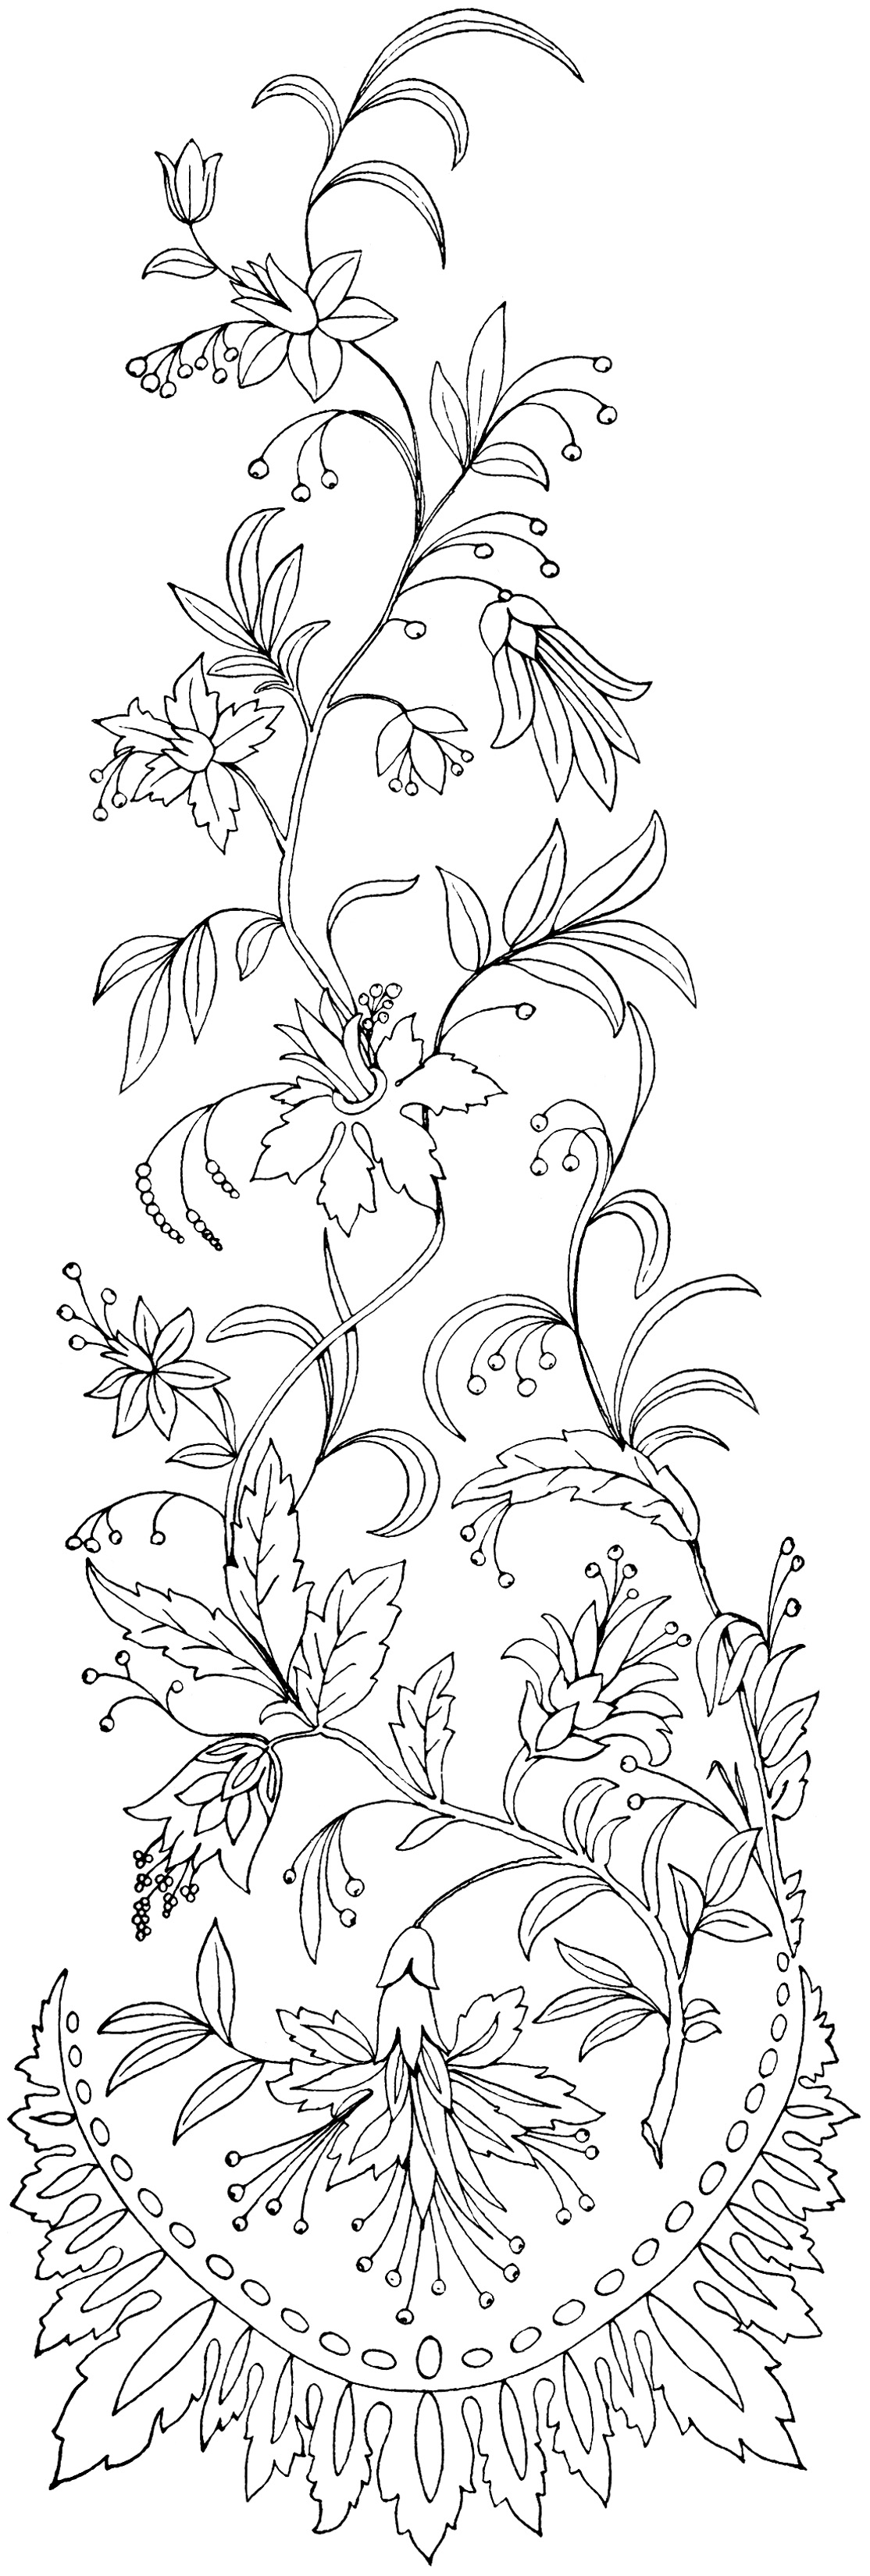 Free vintage image floral embroidery pattern old design